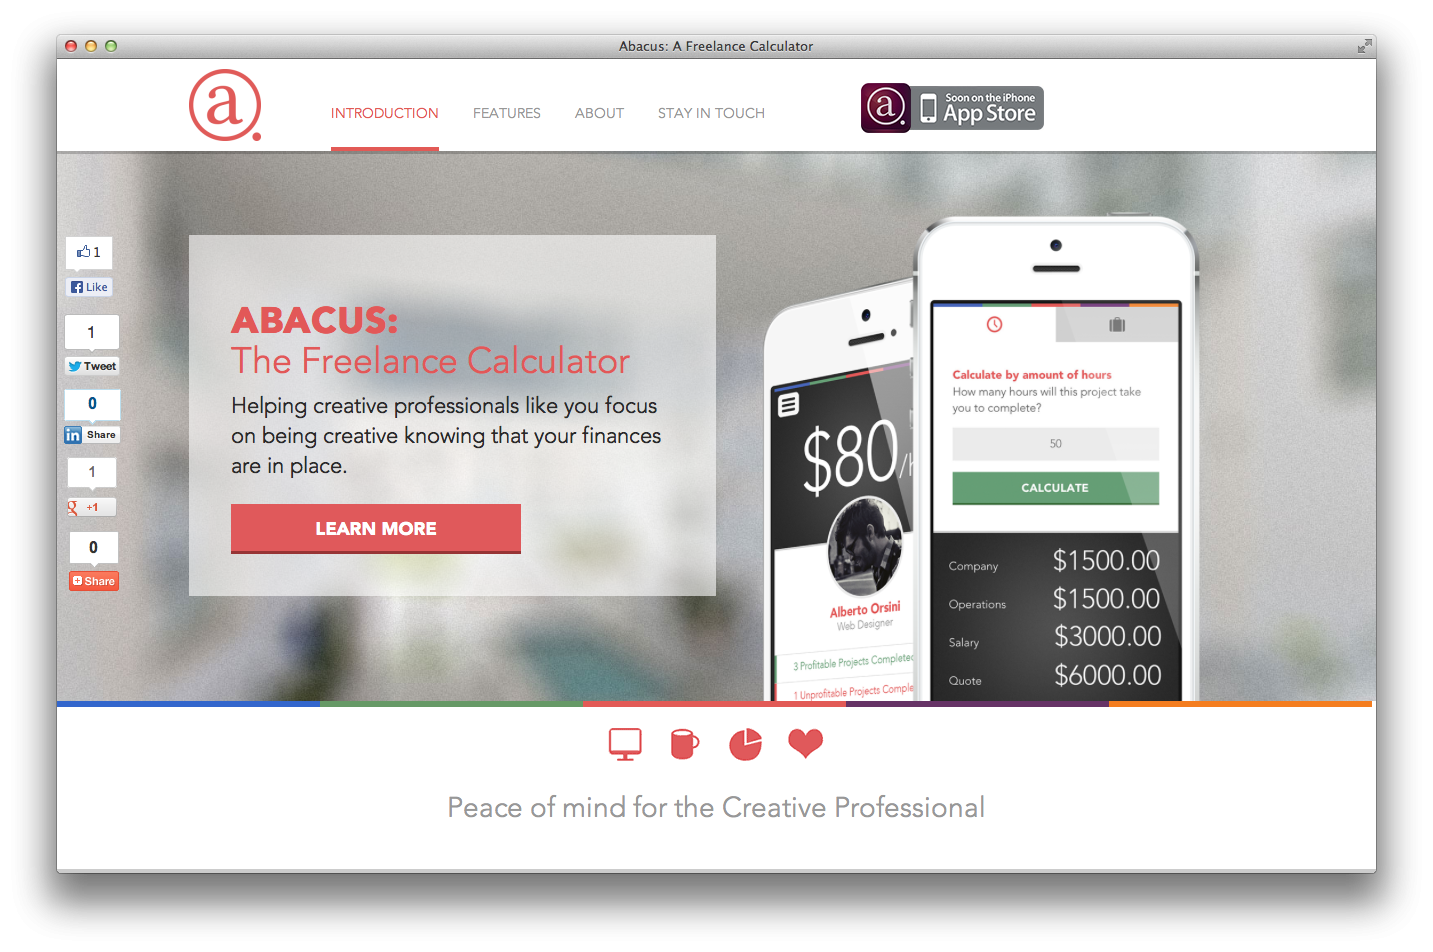 Abacus - A freelance calculator - image 3 - student project